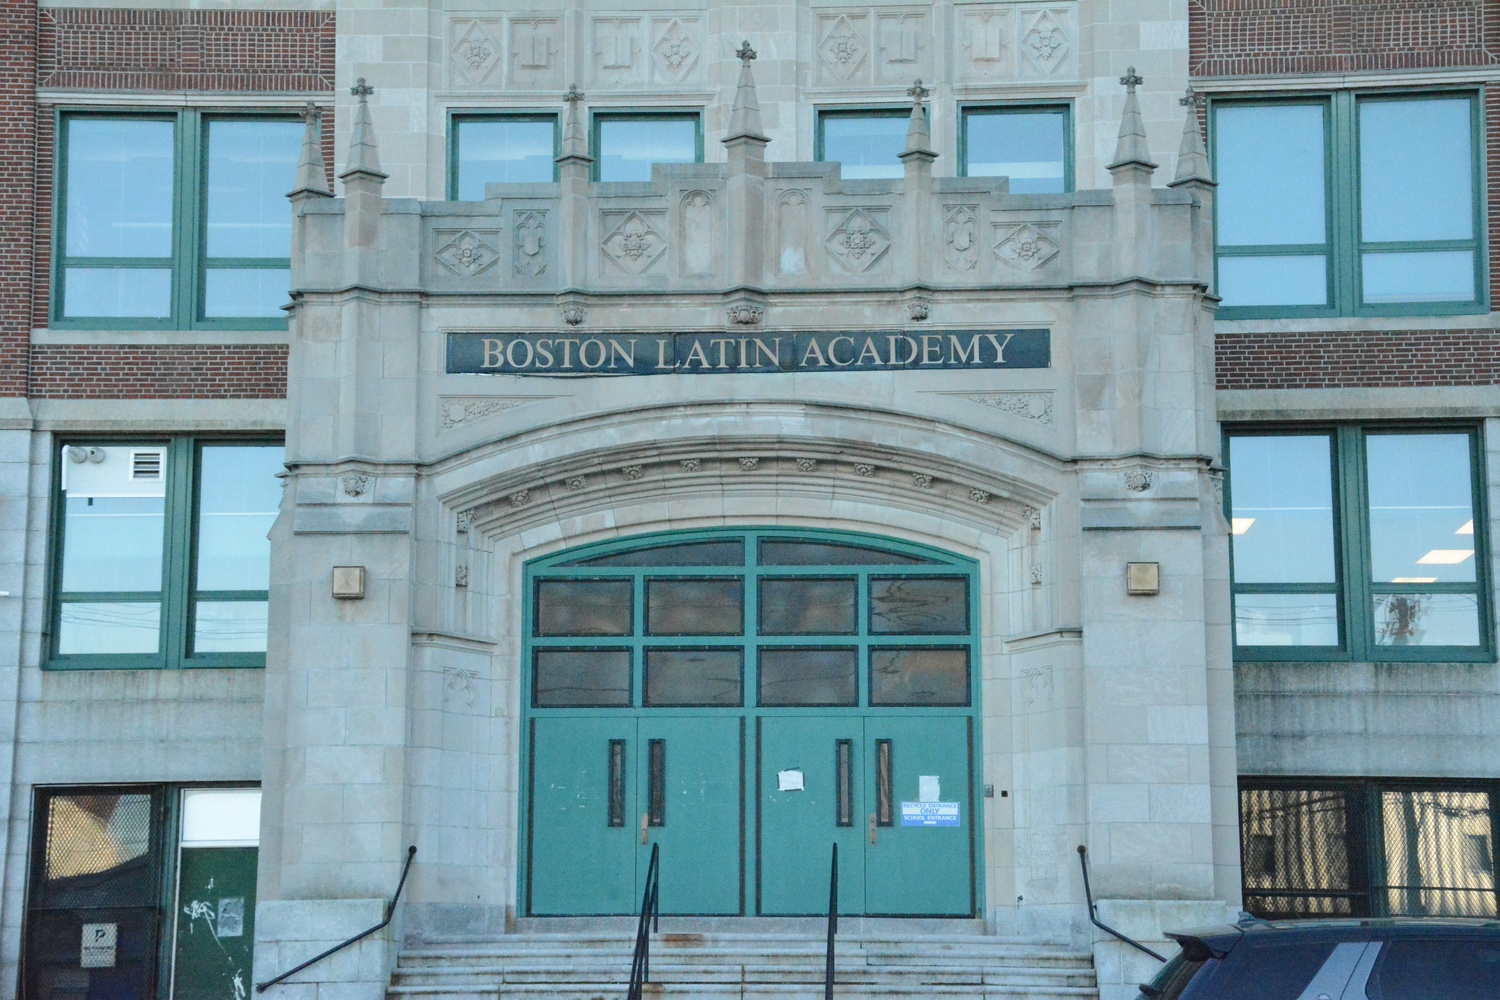 Boston Latin Academy is one of Boston's most prestigious public schools, and one of three exam schools.